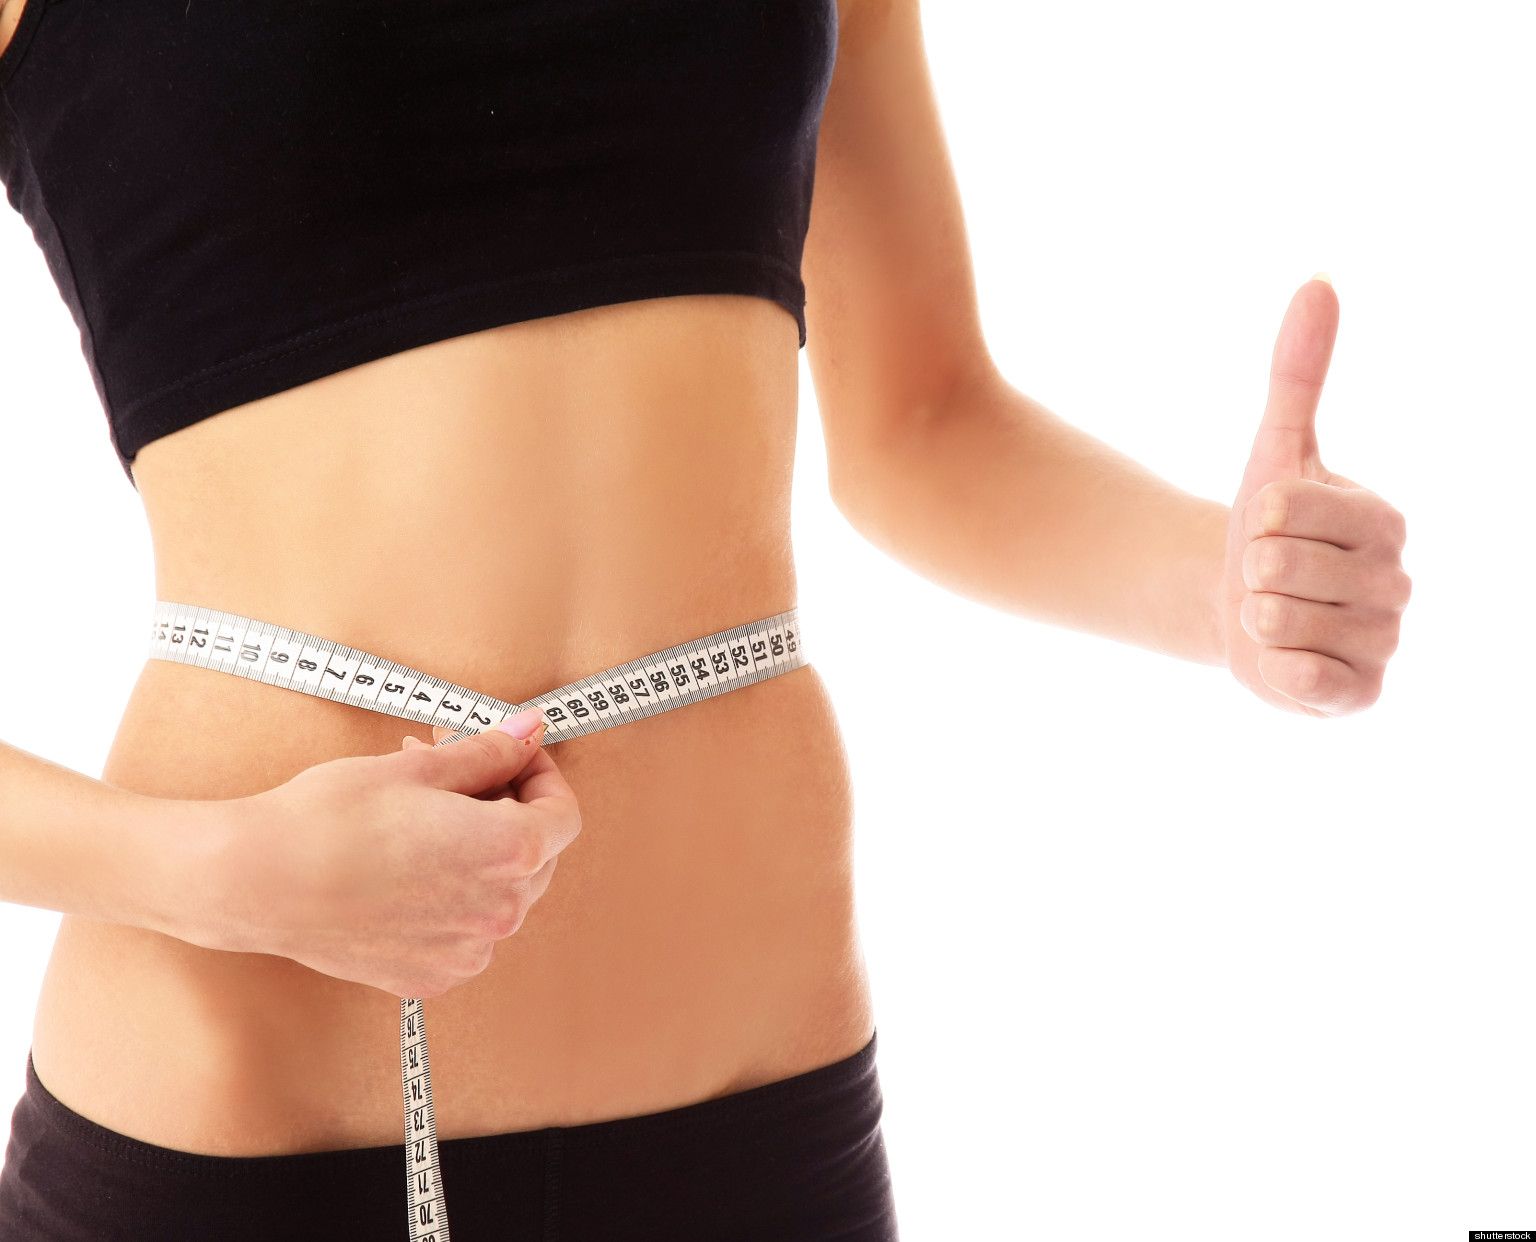 weight loss and health care providers Talking with patients about weight loss: tips for primary care providers as a primary care clinician, you are in an ideal position to talk with adult patients about weight loss these tips and resources may help you address this sensitive topic with your patients.